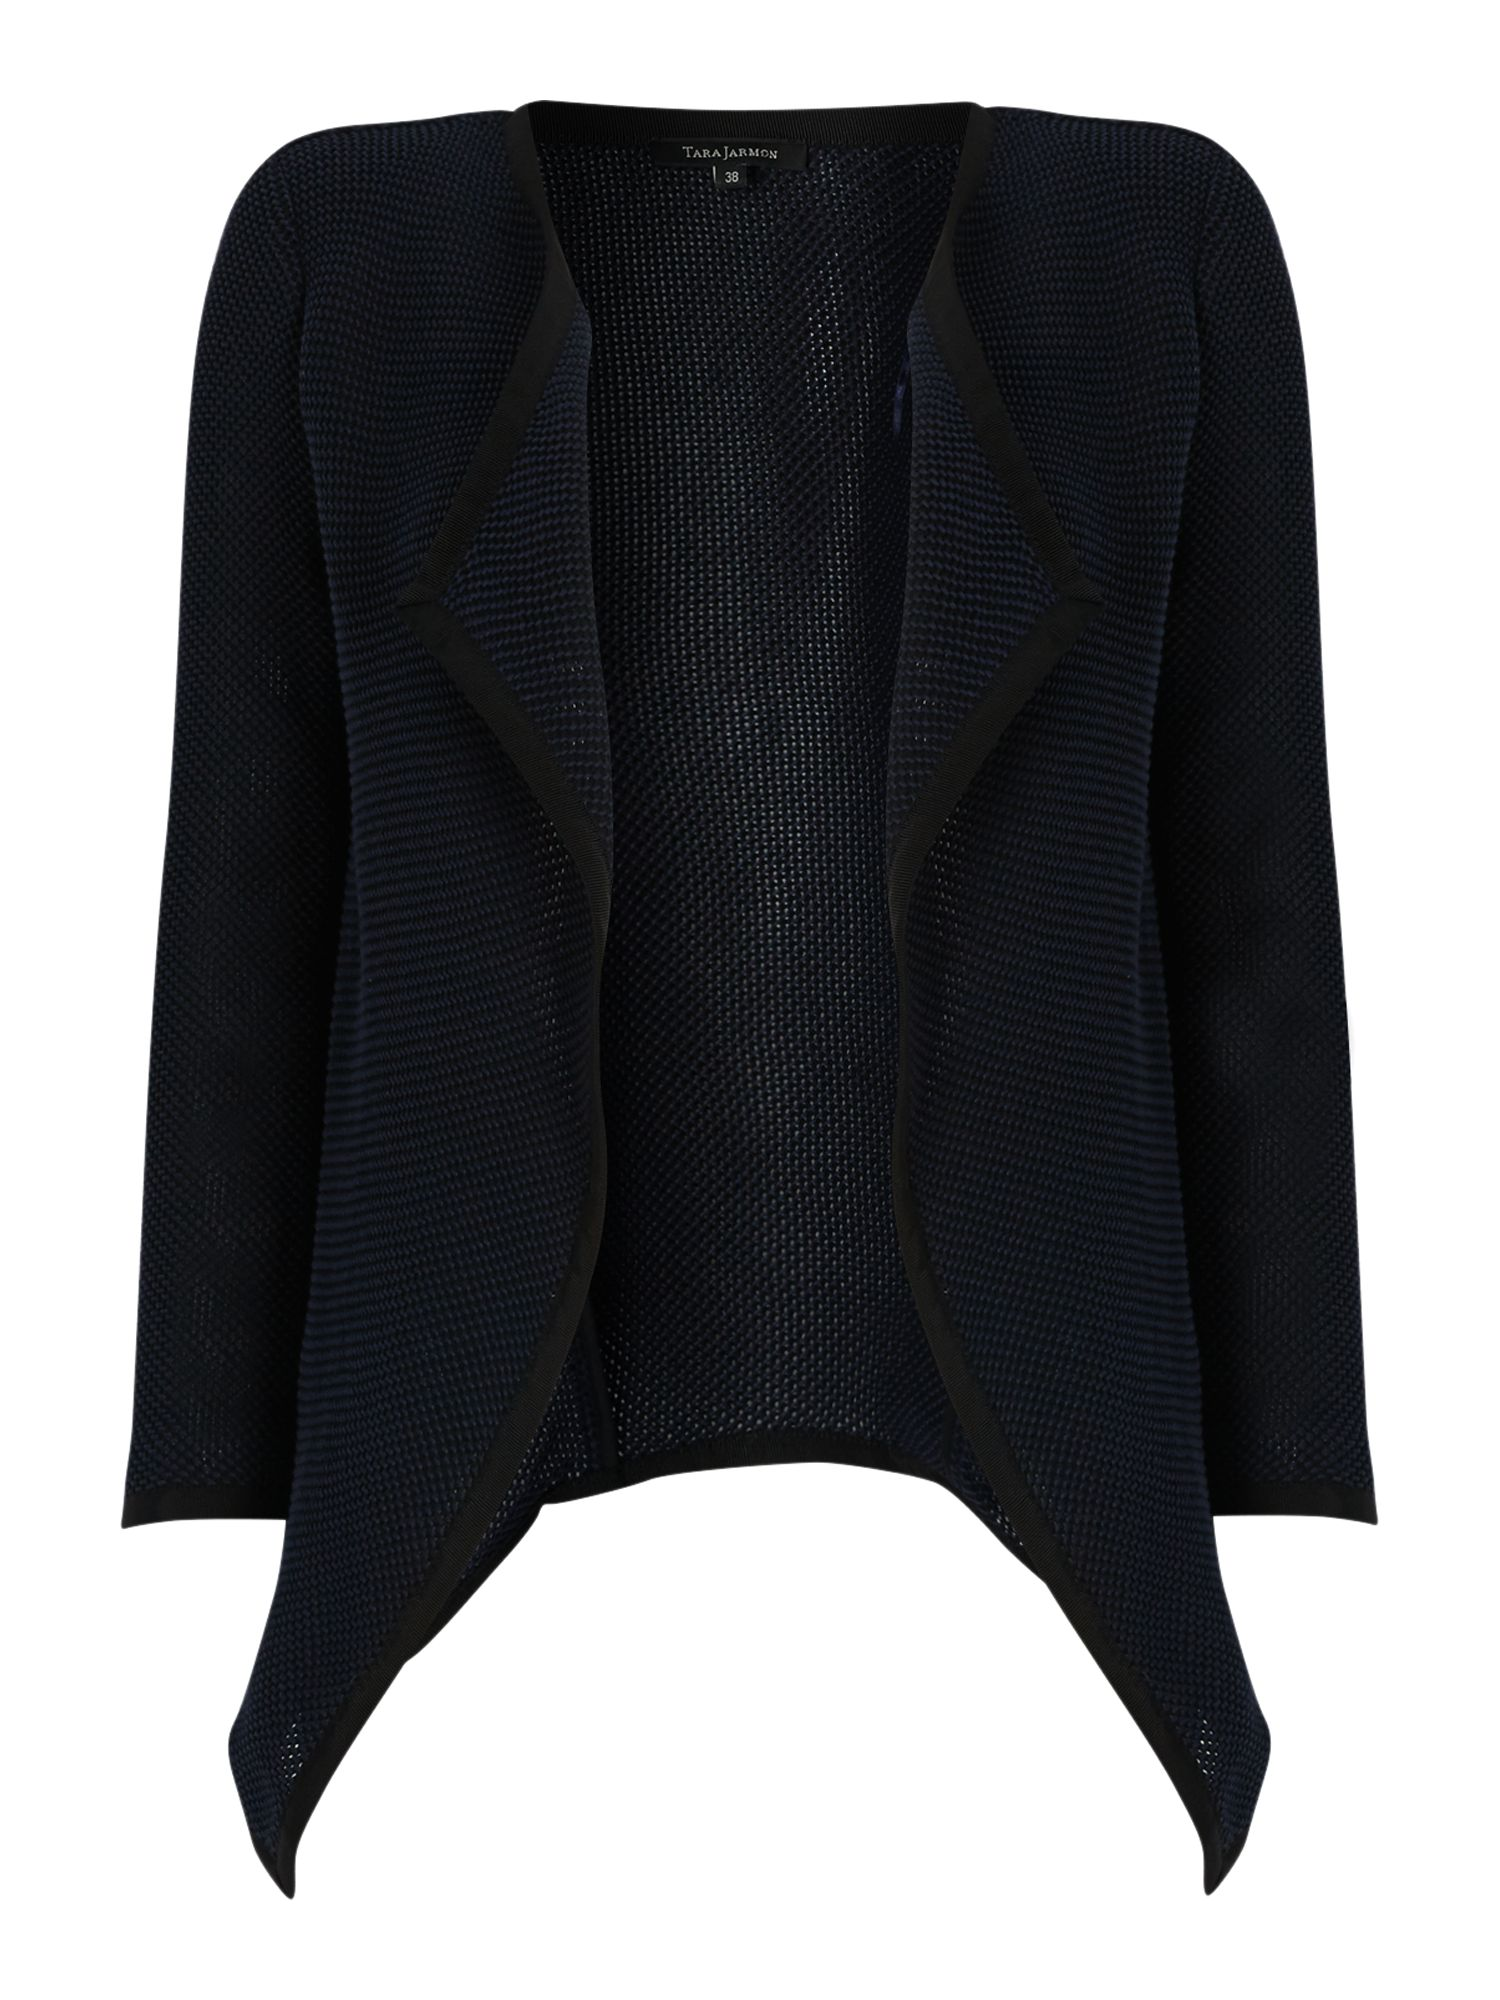 Tara Jarmon Tara Jarmon Waterfall knit jacket, Navy